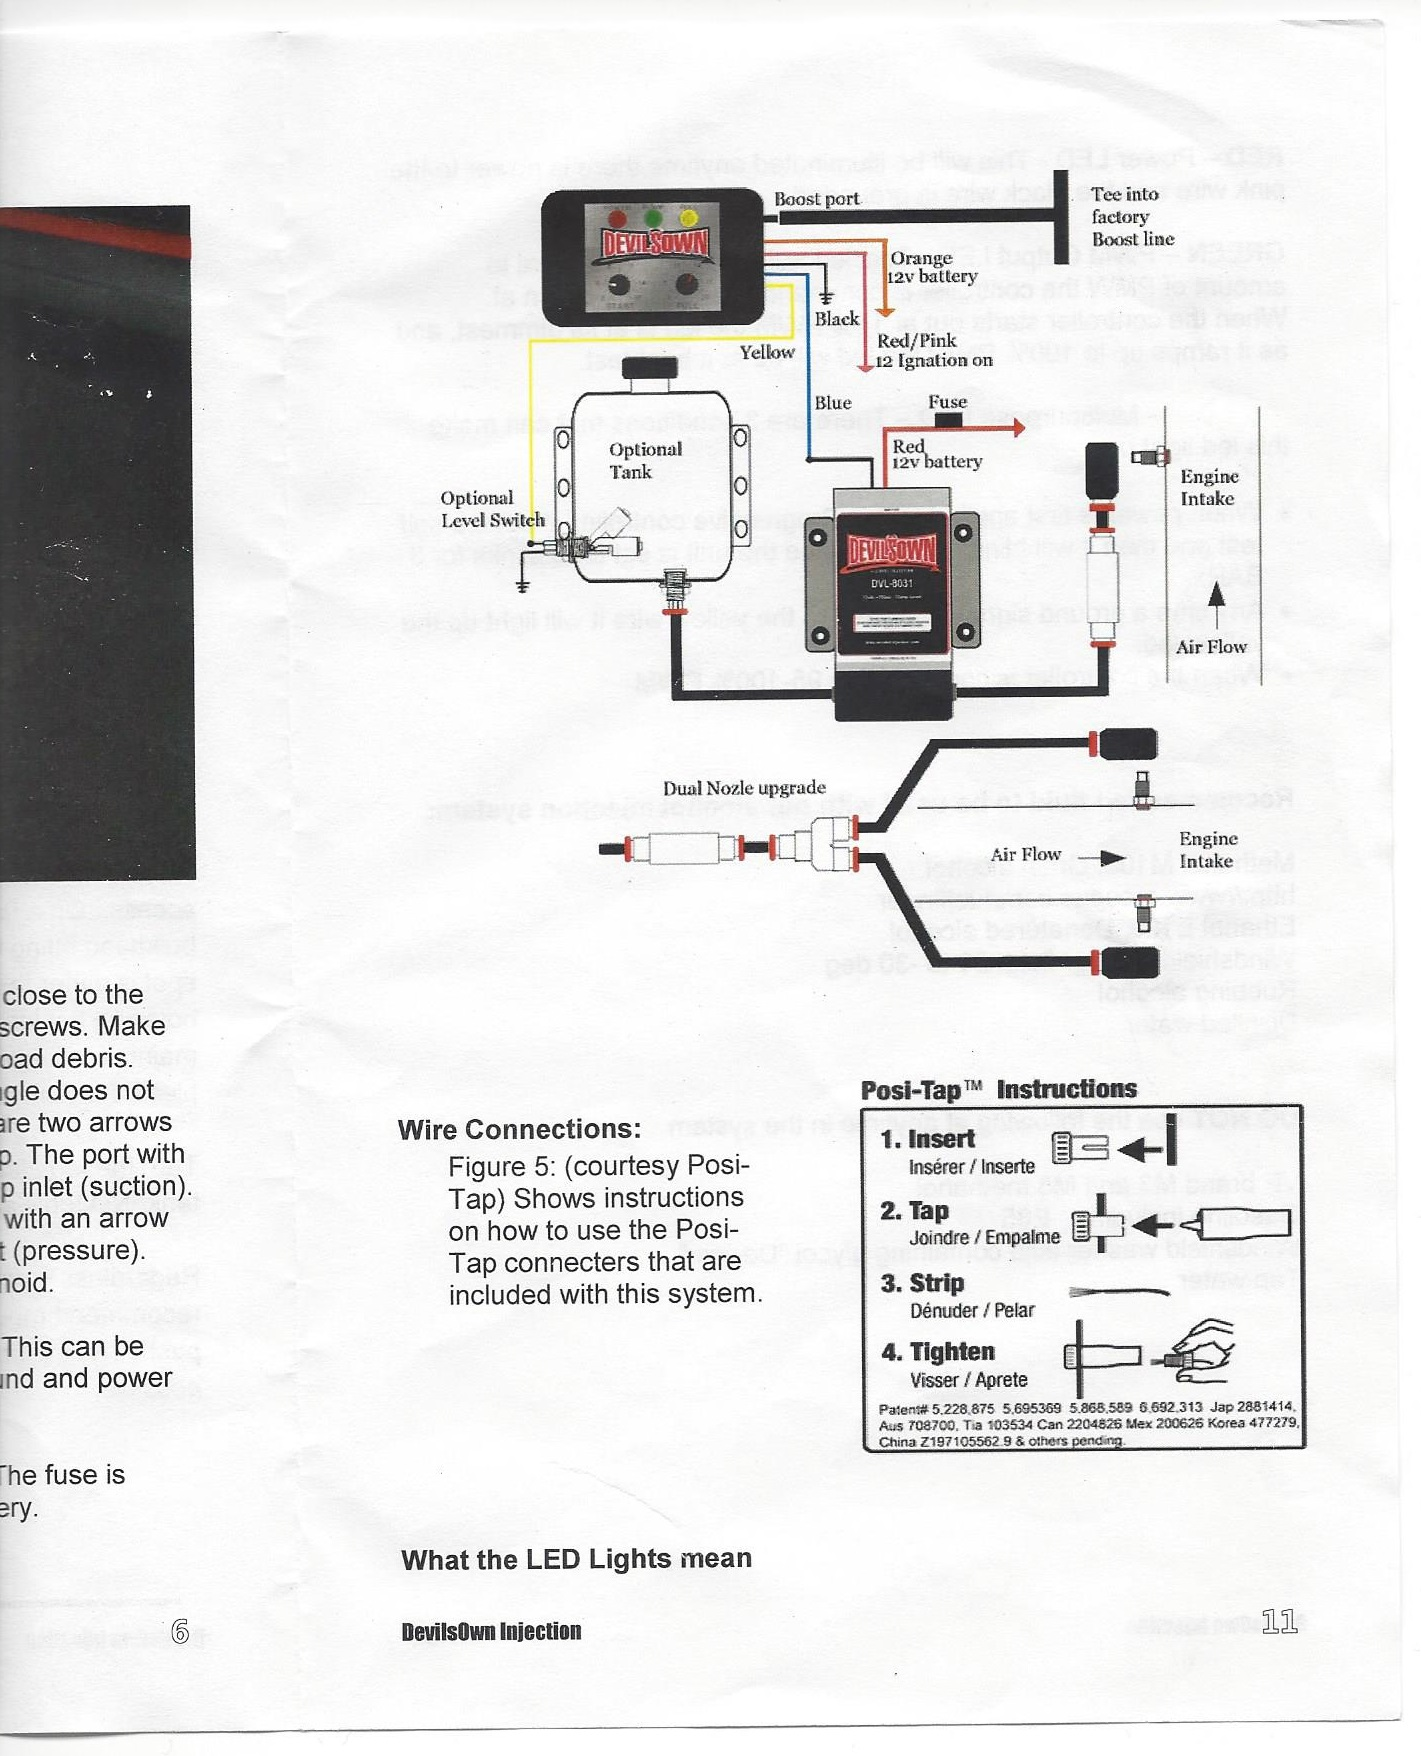 hight resolution of aem failsafe water meth need help to wire up to hondata s300v2